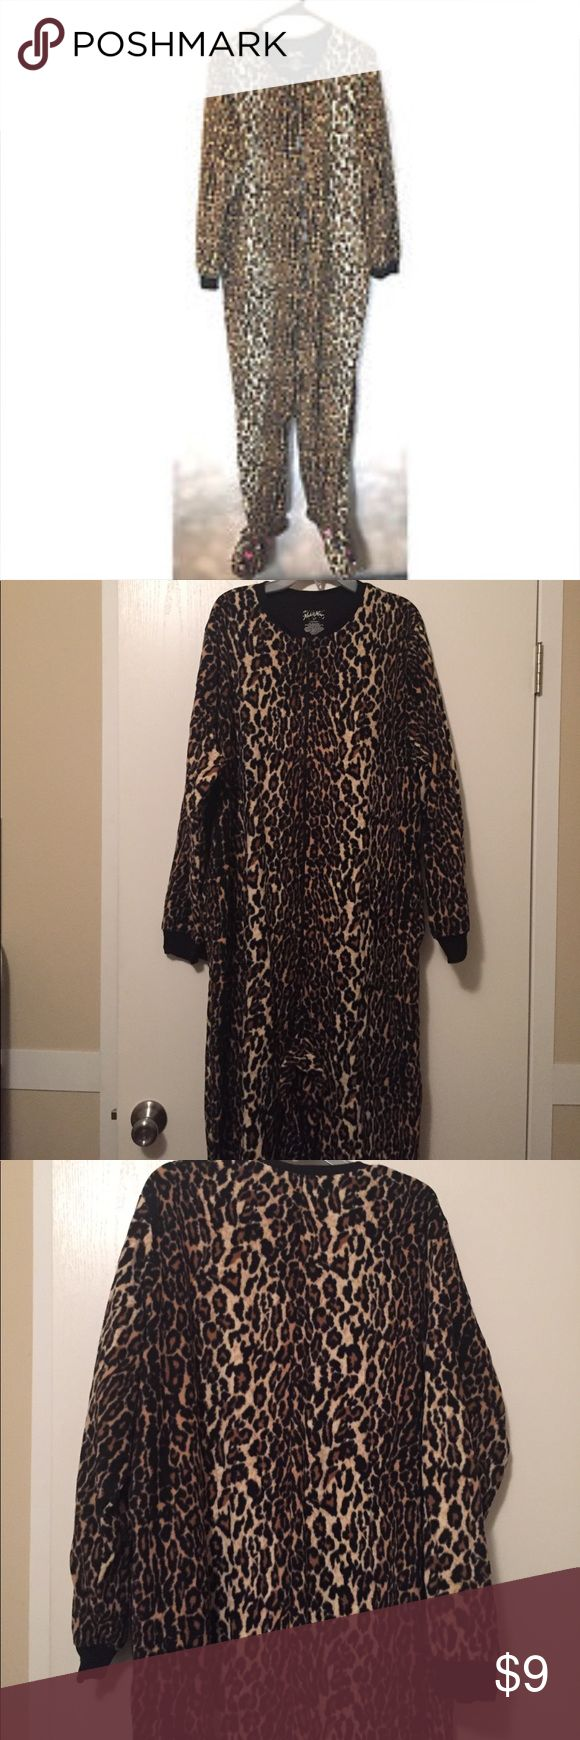 Nick and Nora Cheetah Onesie XL, NWOT Nick and Nora XL Cat /Cheetah Onesie New without tags. Bought it for my daughters boyfriend and he refused to wear it. In like new condition , smoke free home . Nick & Nora Intimates & Sleepwear Pajamas